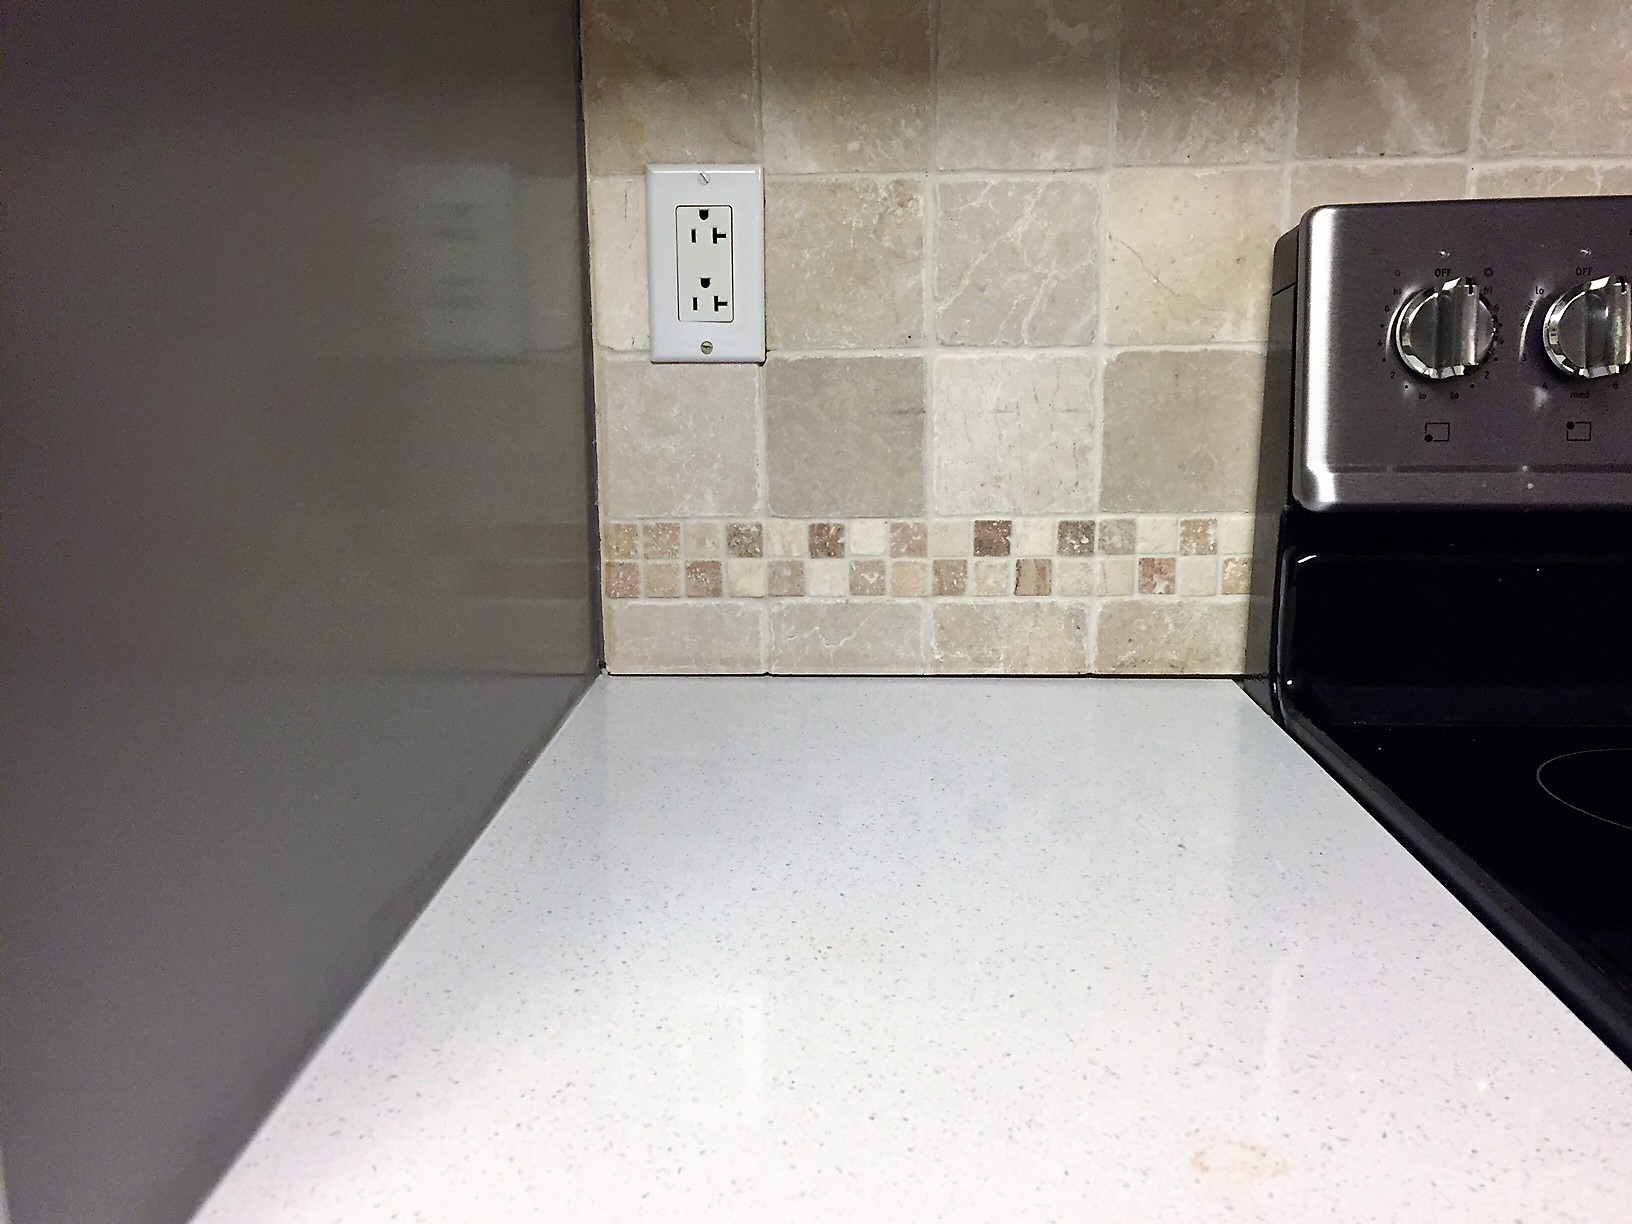 You can see in this picture the visible seam between the tile and counter.